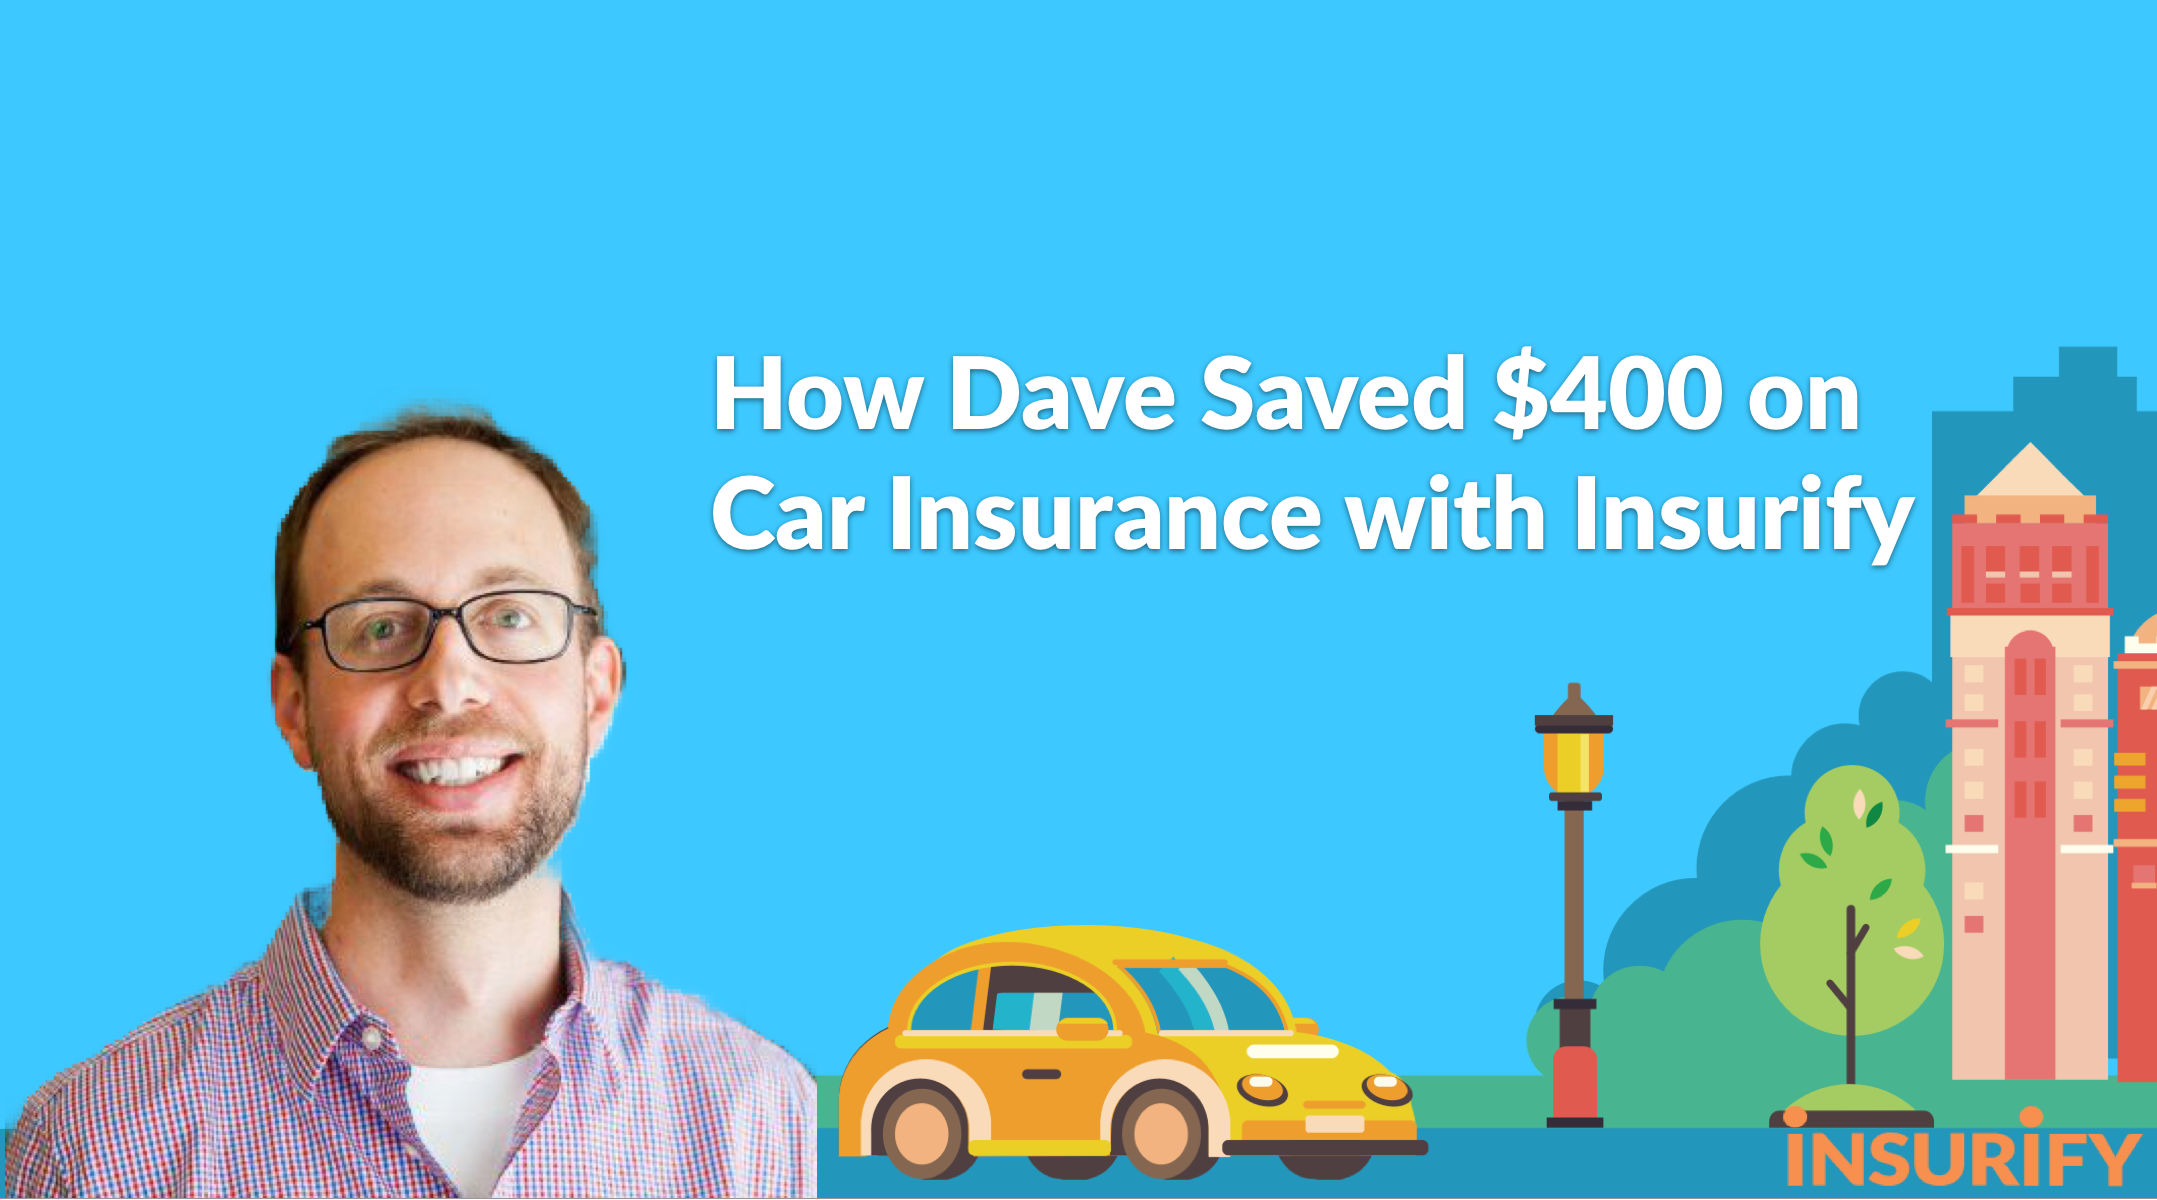 How Dave saved $400 on car insurance with Insurify